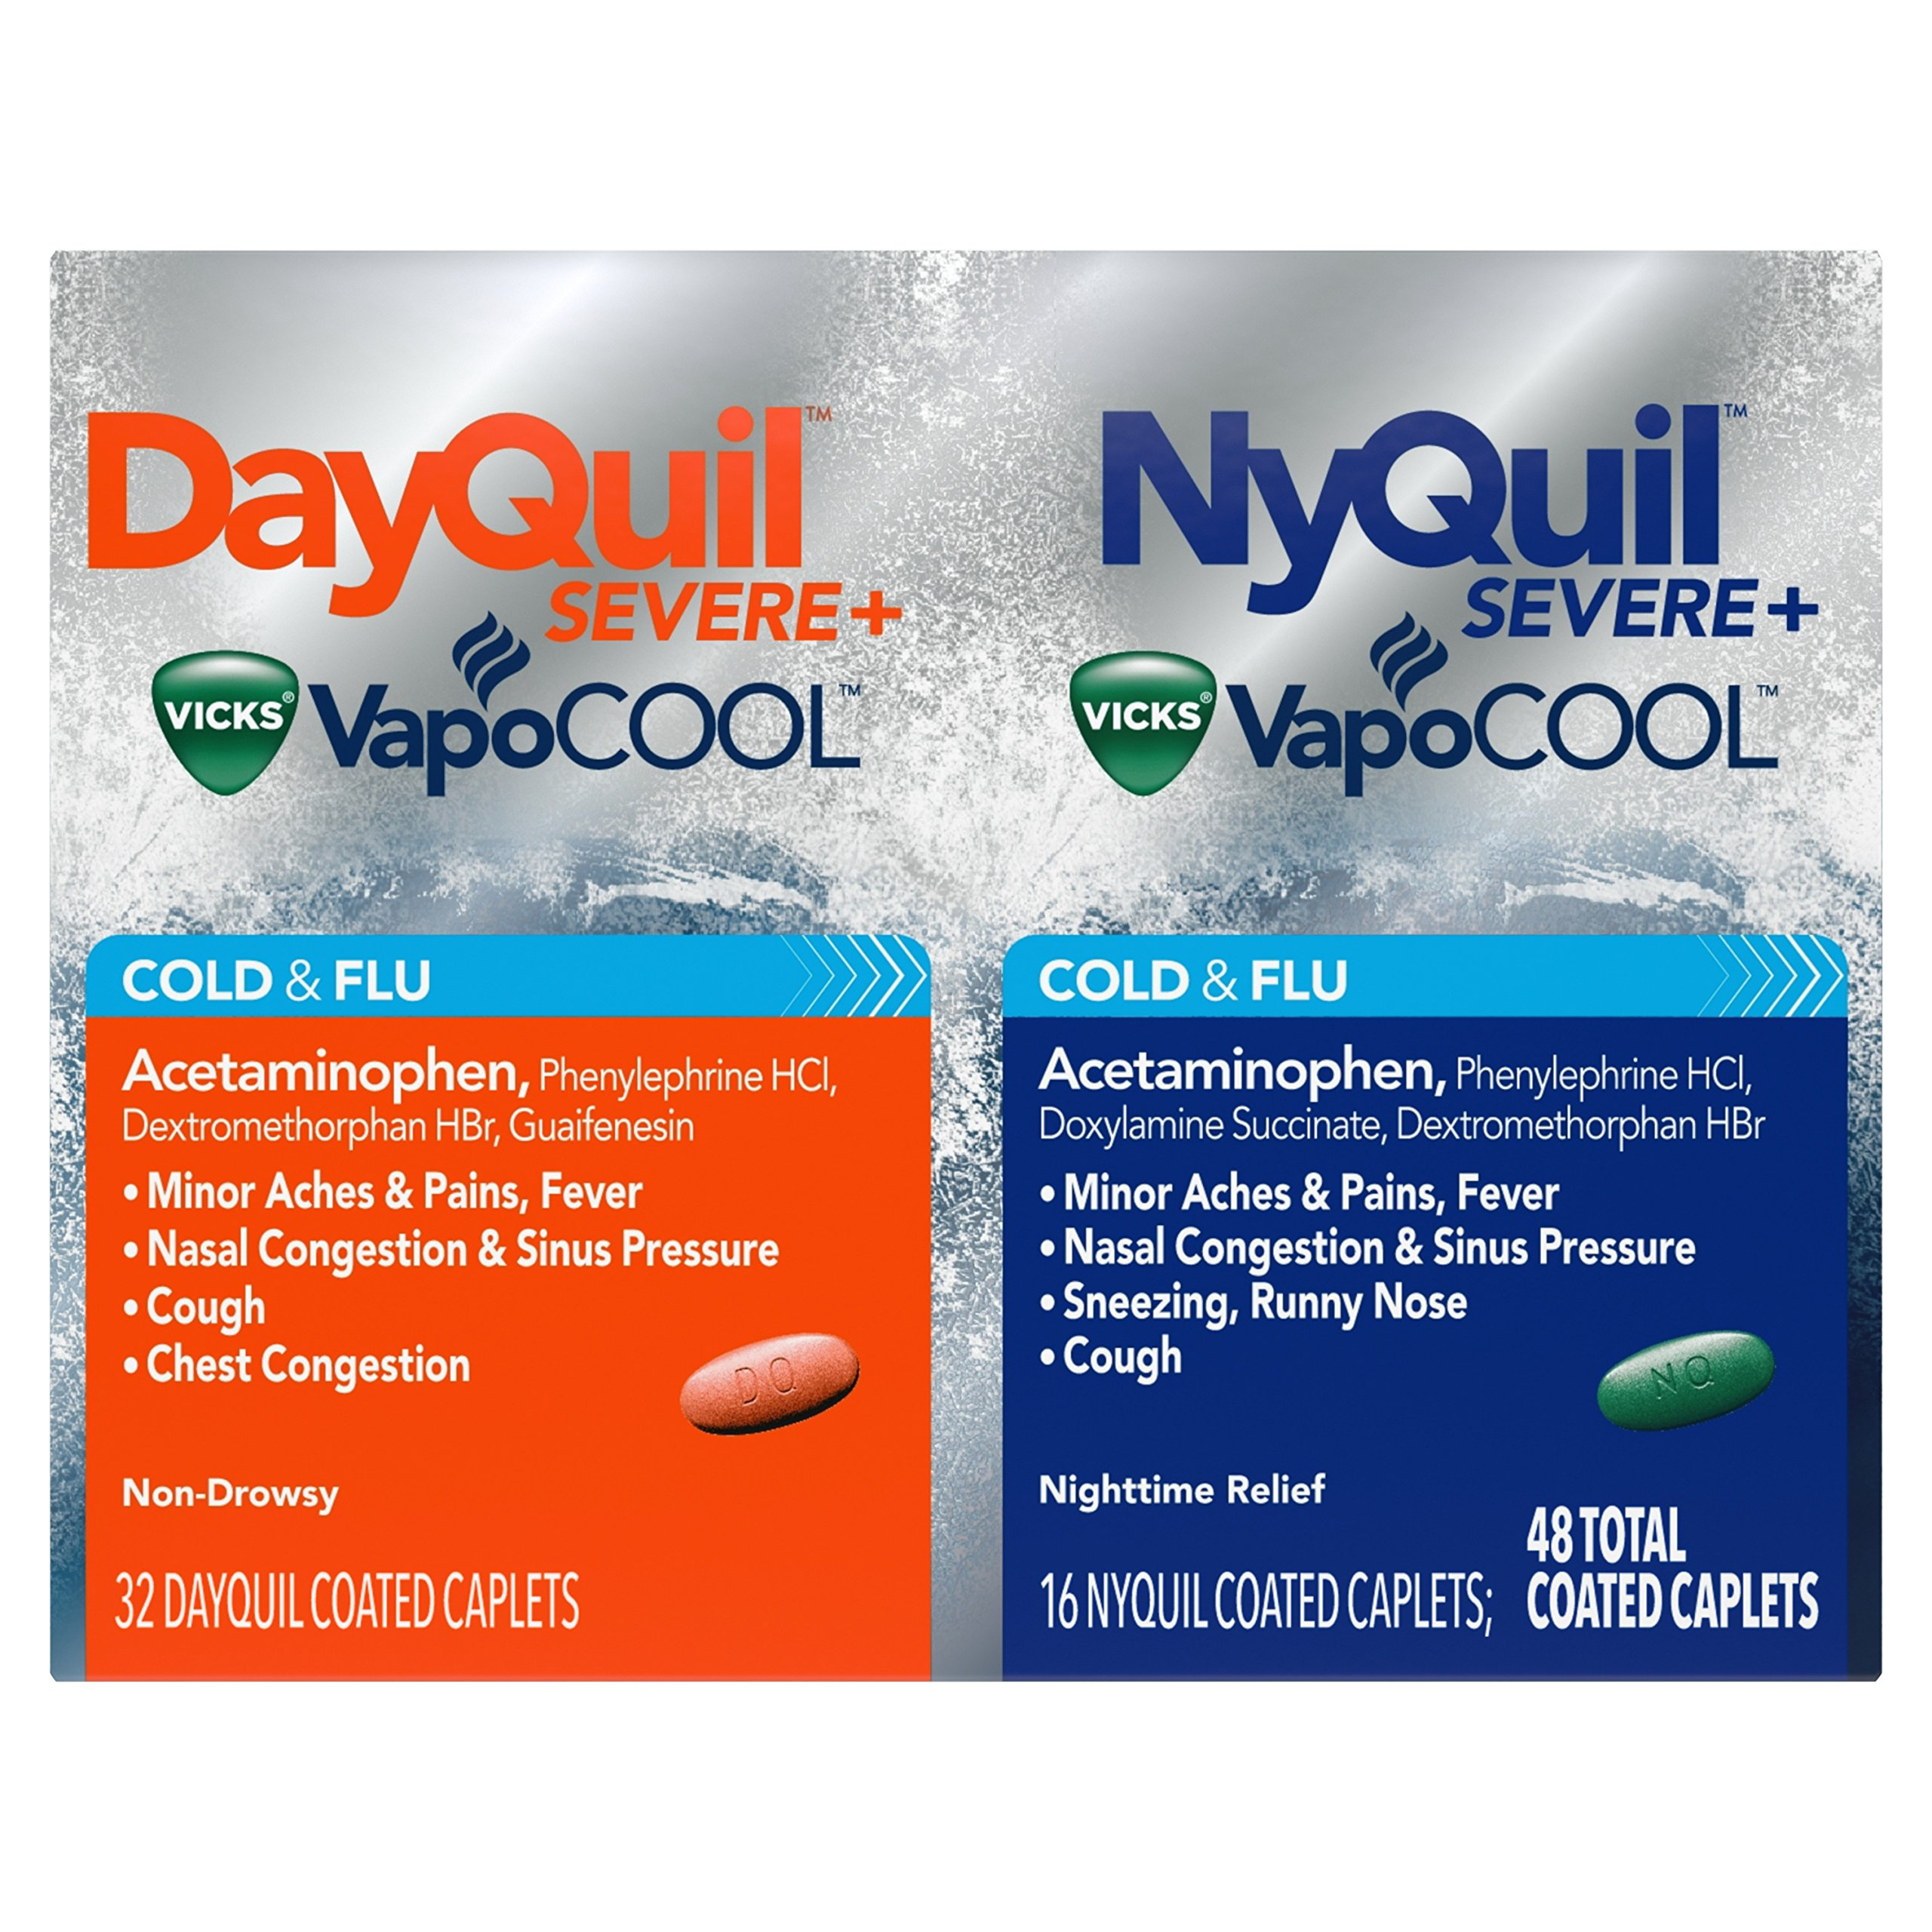 DayQuil and NyQuil SEVERE with Vicks VapoCOOL Cough, Cold & Flu Relief, Caplets, 48 Count (32 DayQuil & 16 NyQuil) - Relieves Sore Throat, Fever, and Congestion, Day or Night (Packaging May Vary) by Vicks